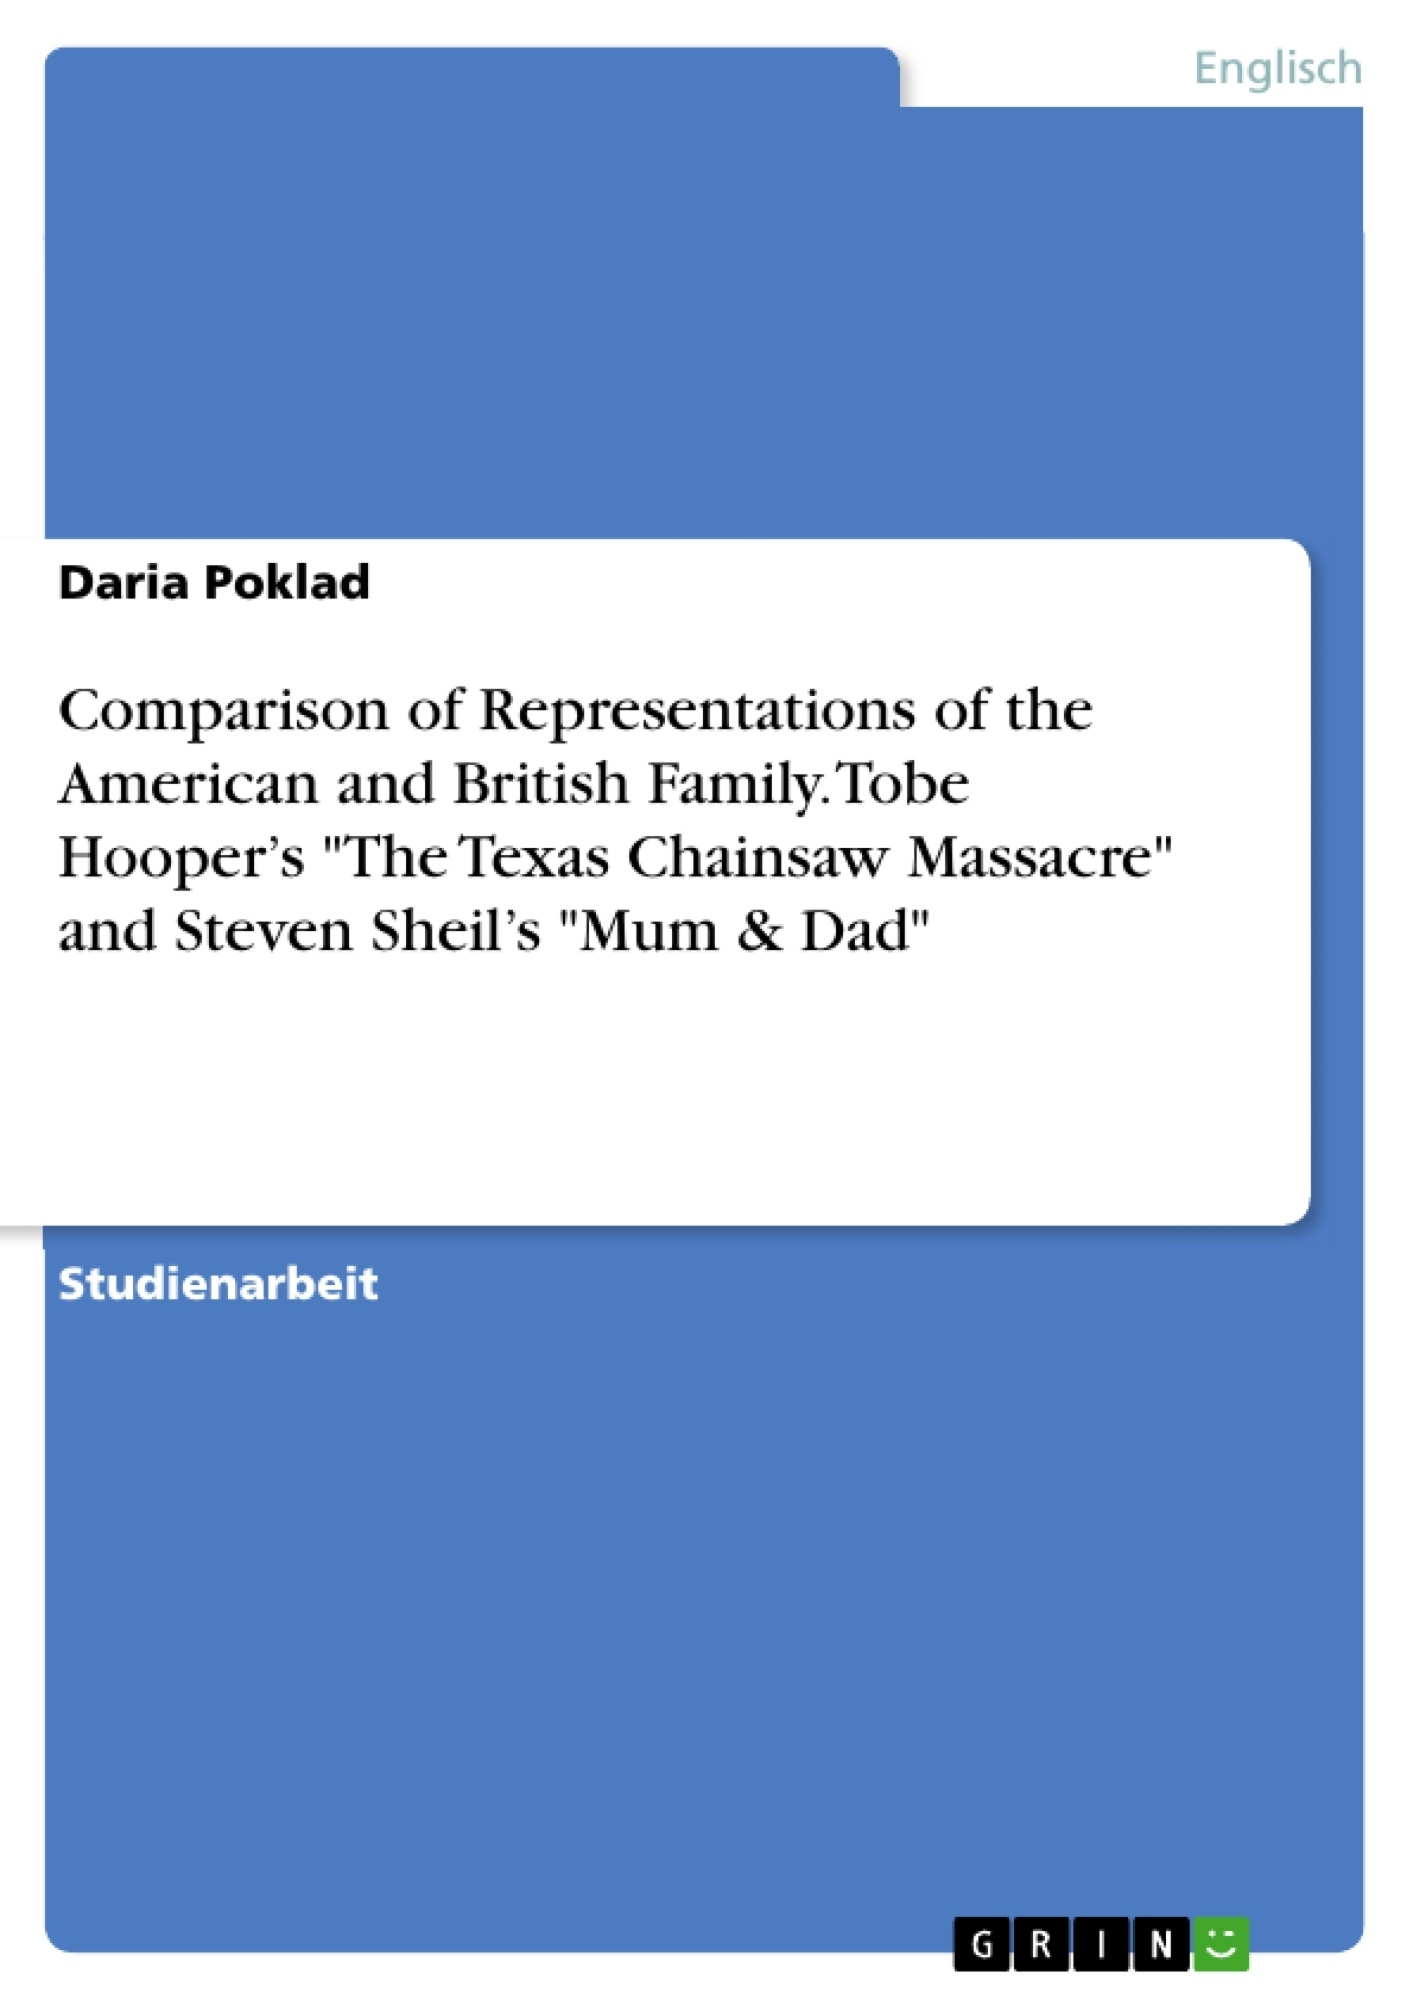 """Titel: Comparison of Representations of the American and British Family. Tobe Hooper's """"The Texas Chainsaw Massacre"""" and Steven Sheil's """"Mum & Dad"""""""